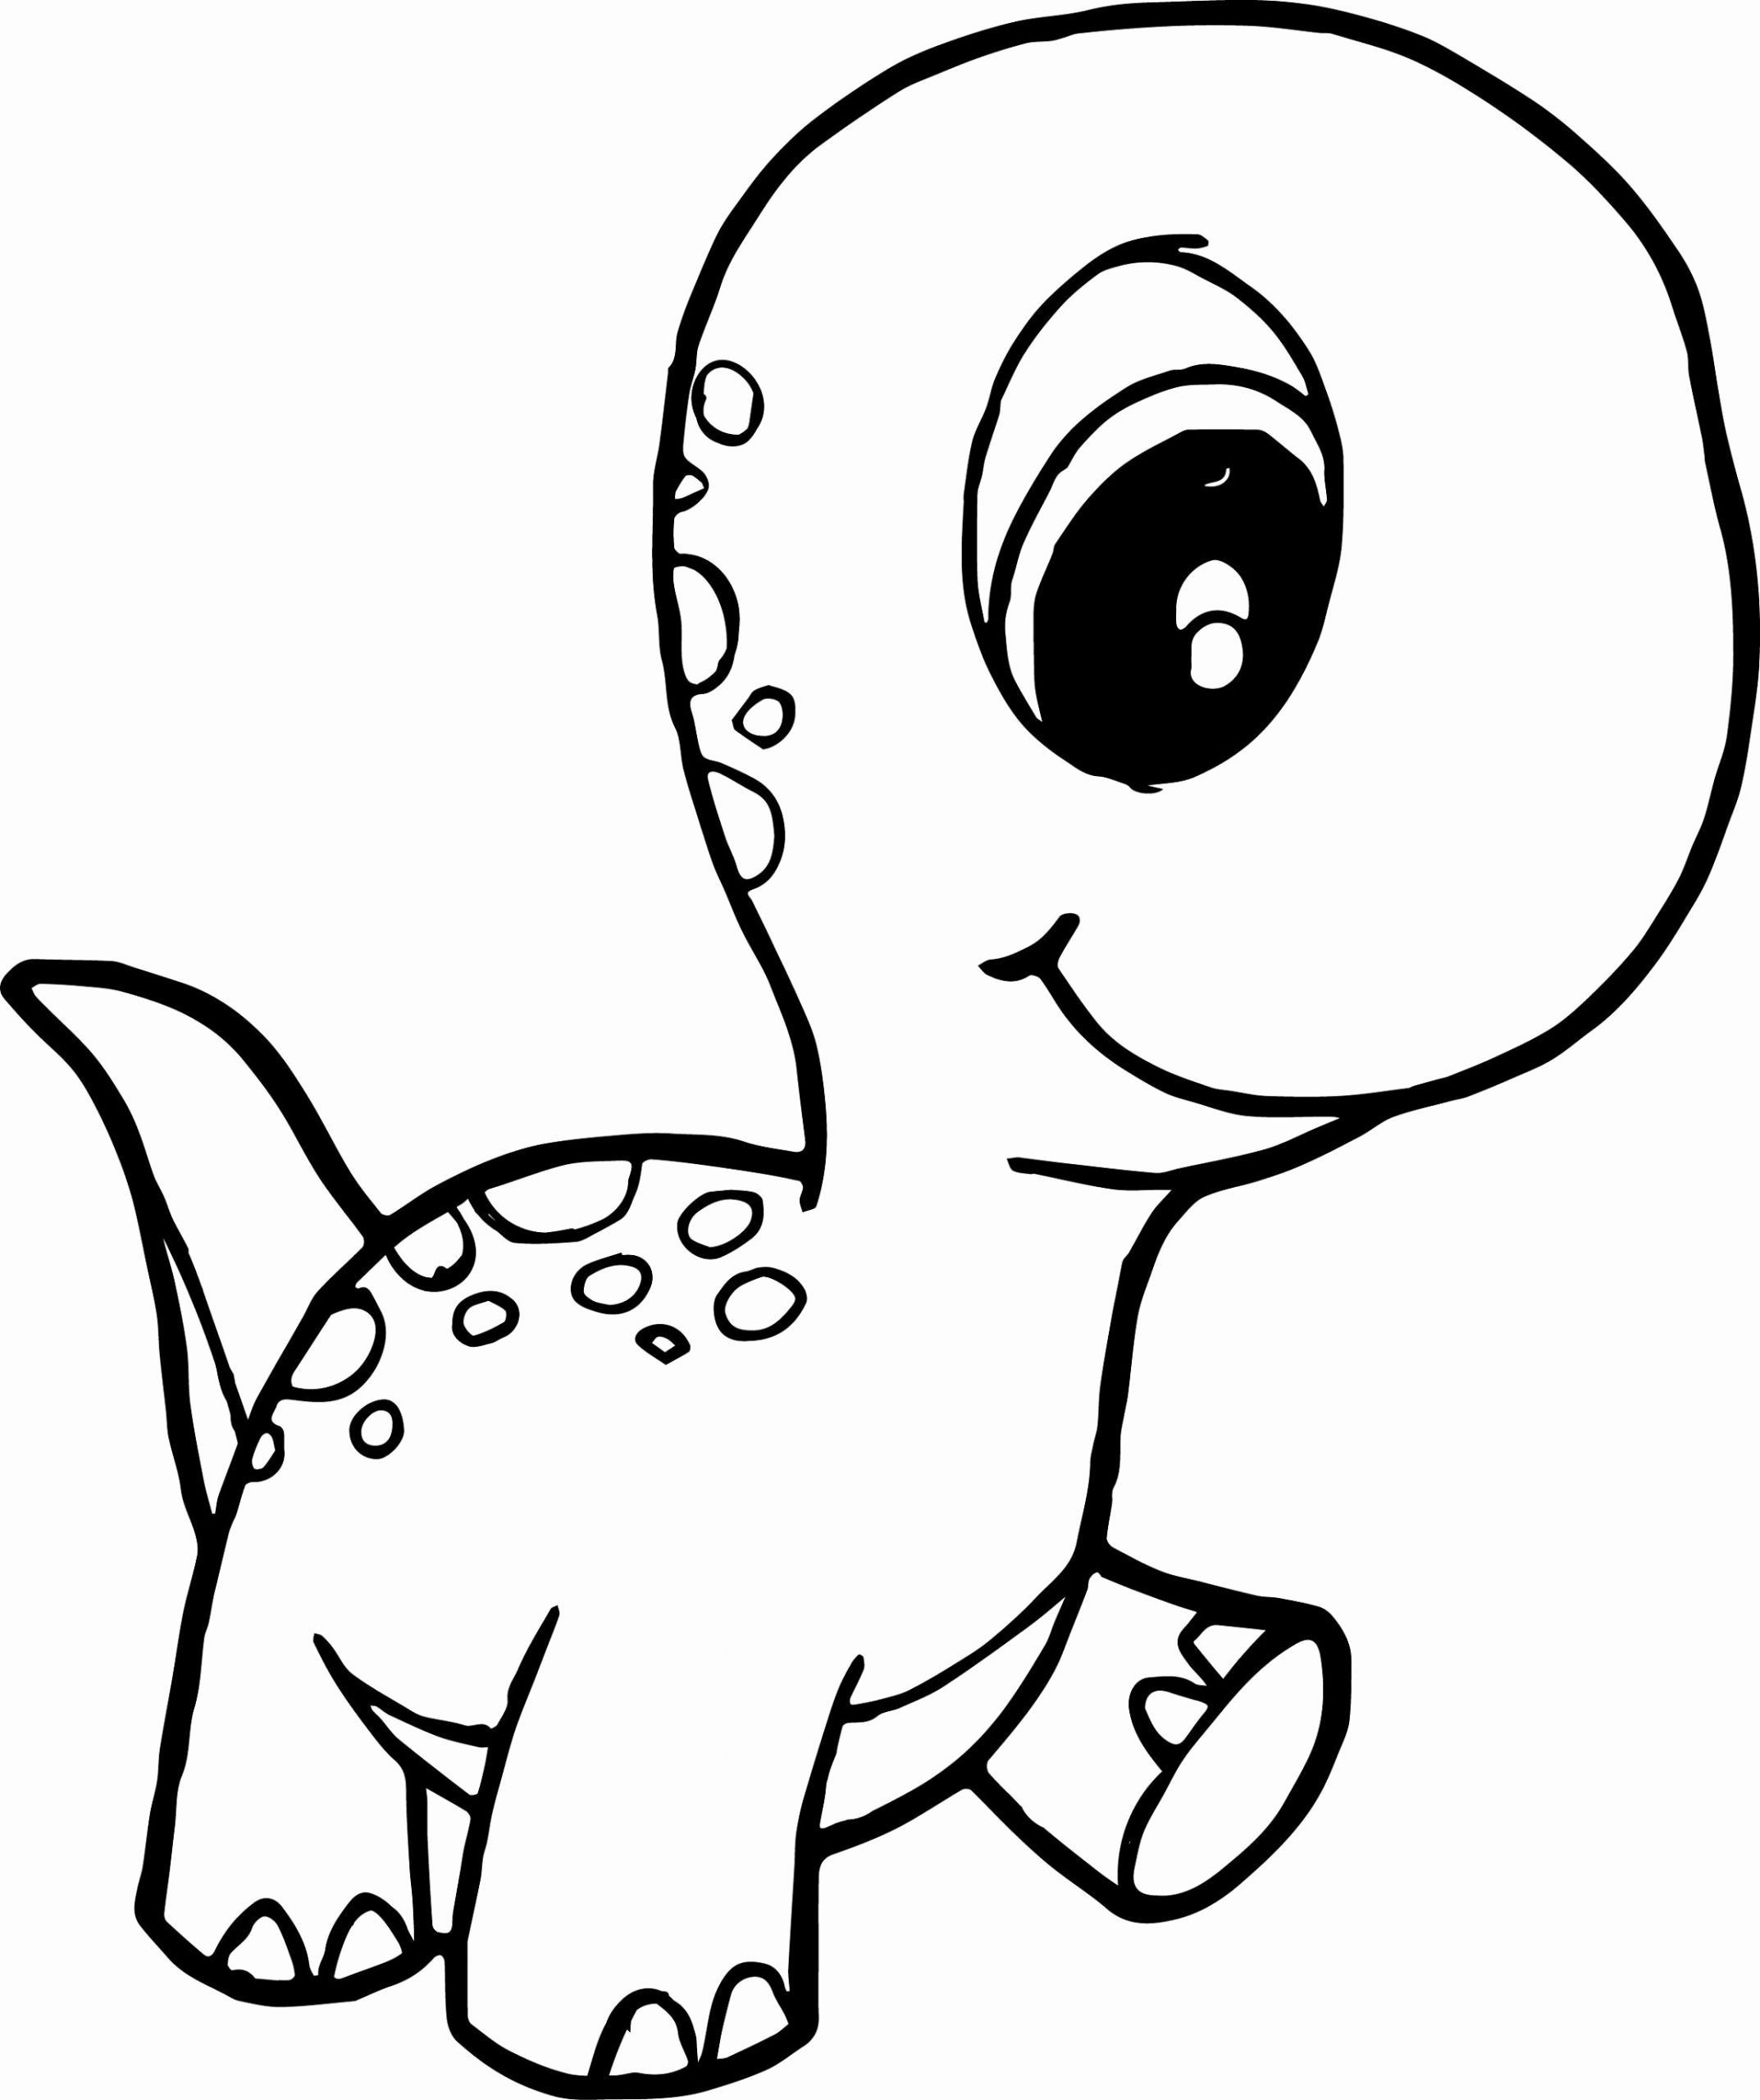 Cute Baby Animal Coloring Pages Fresh Baby Dinosaur Coloring Pages For Preschoolers Cute Coloring Pages Dinosaur Coloring Dinosaur Coloring Pages